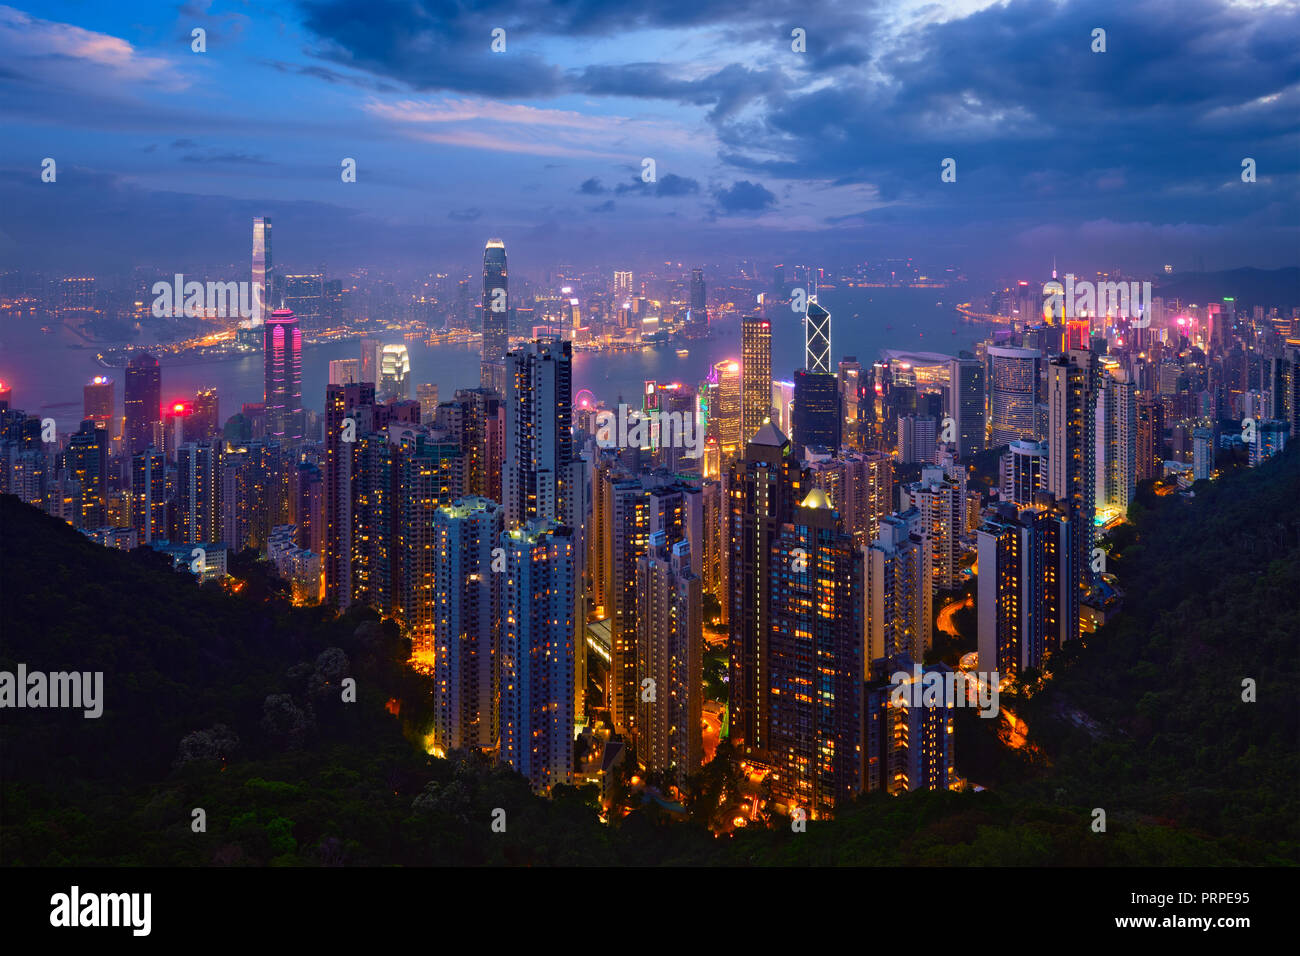 Hong Kong skyscrapers skyline cityscape view - Stock Image